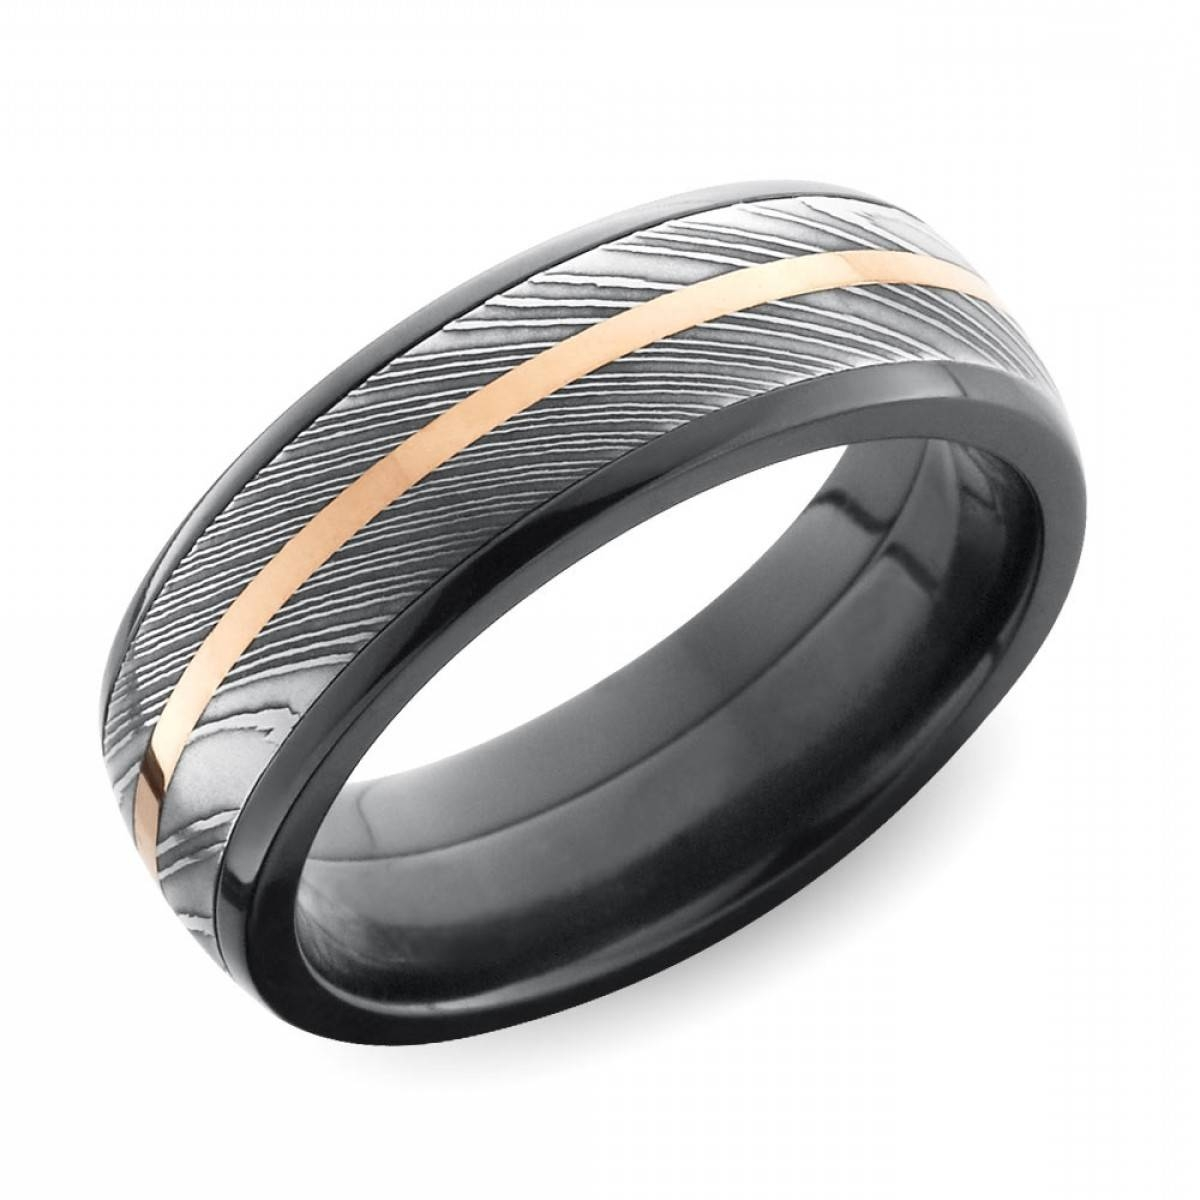 Cool Mens Wedding Rings That Defy Tradition | Oblacoder For Cool Male Wedding Bands (View 9 of 15)